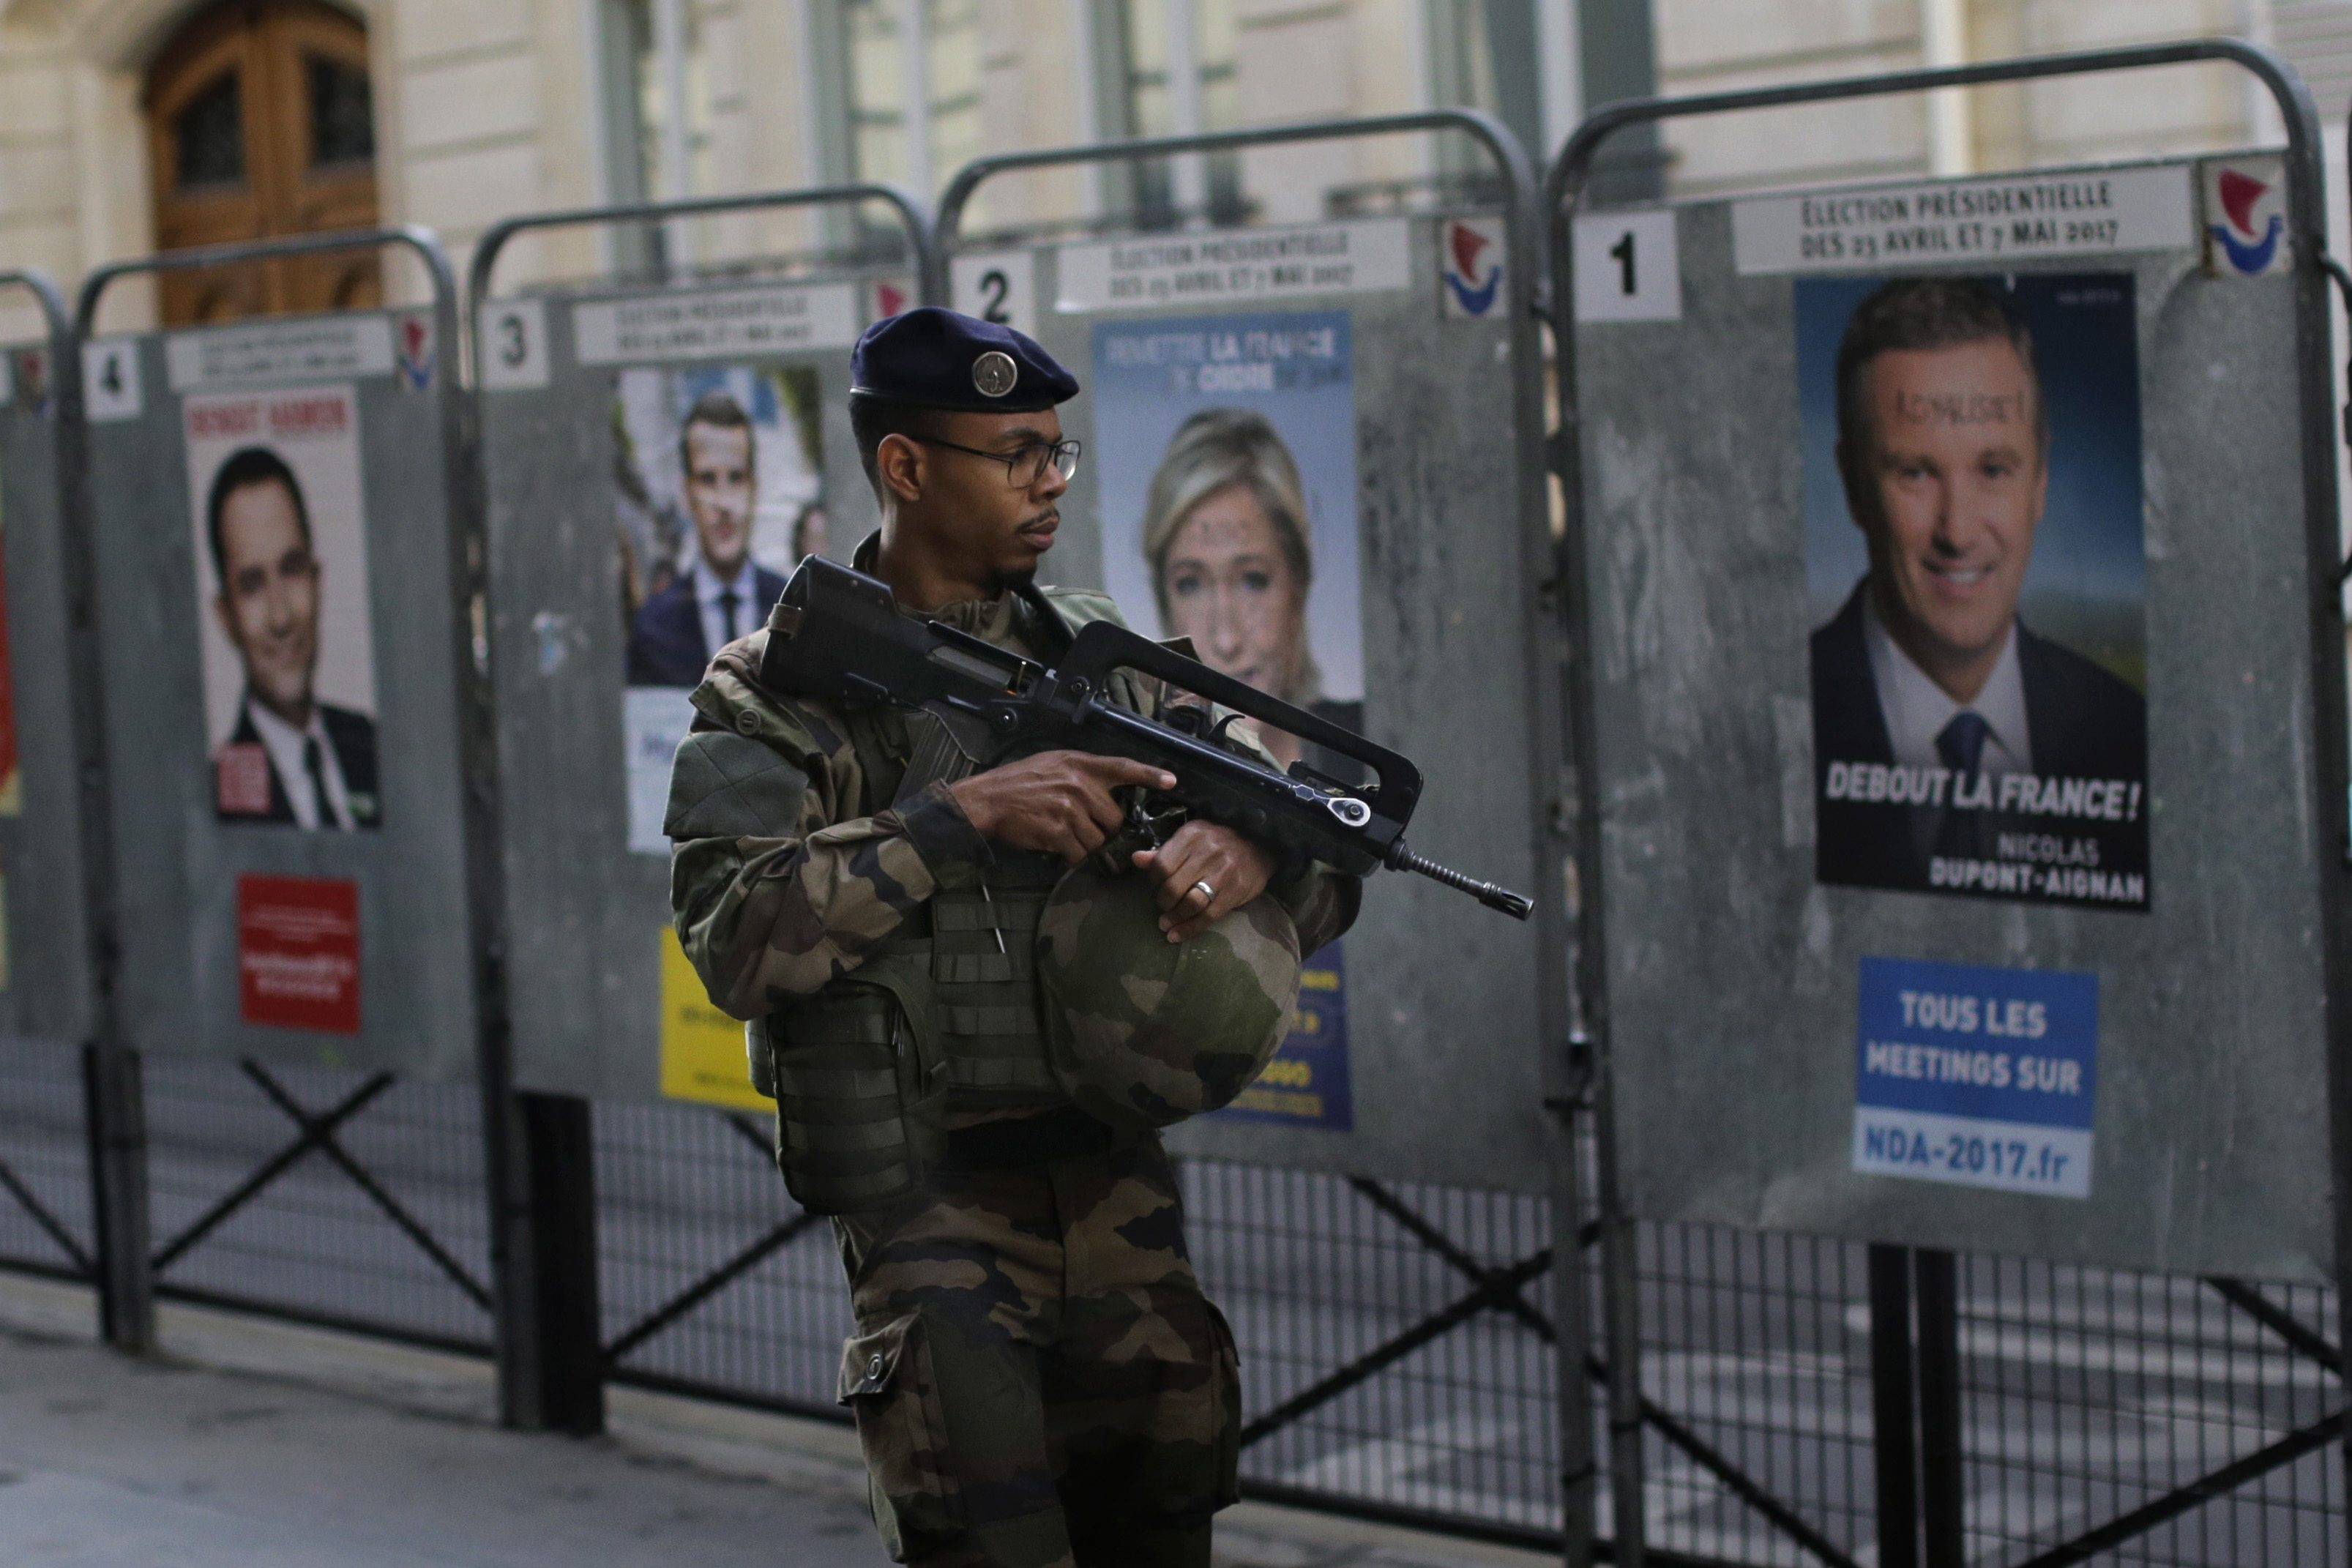 French elections: Macron favourite but Le Pen can't be counted out